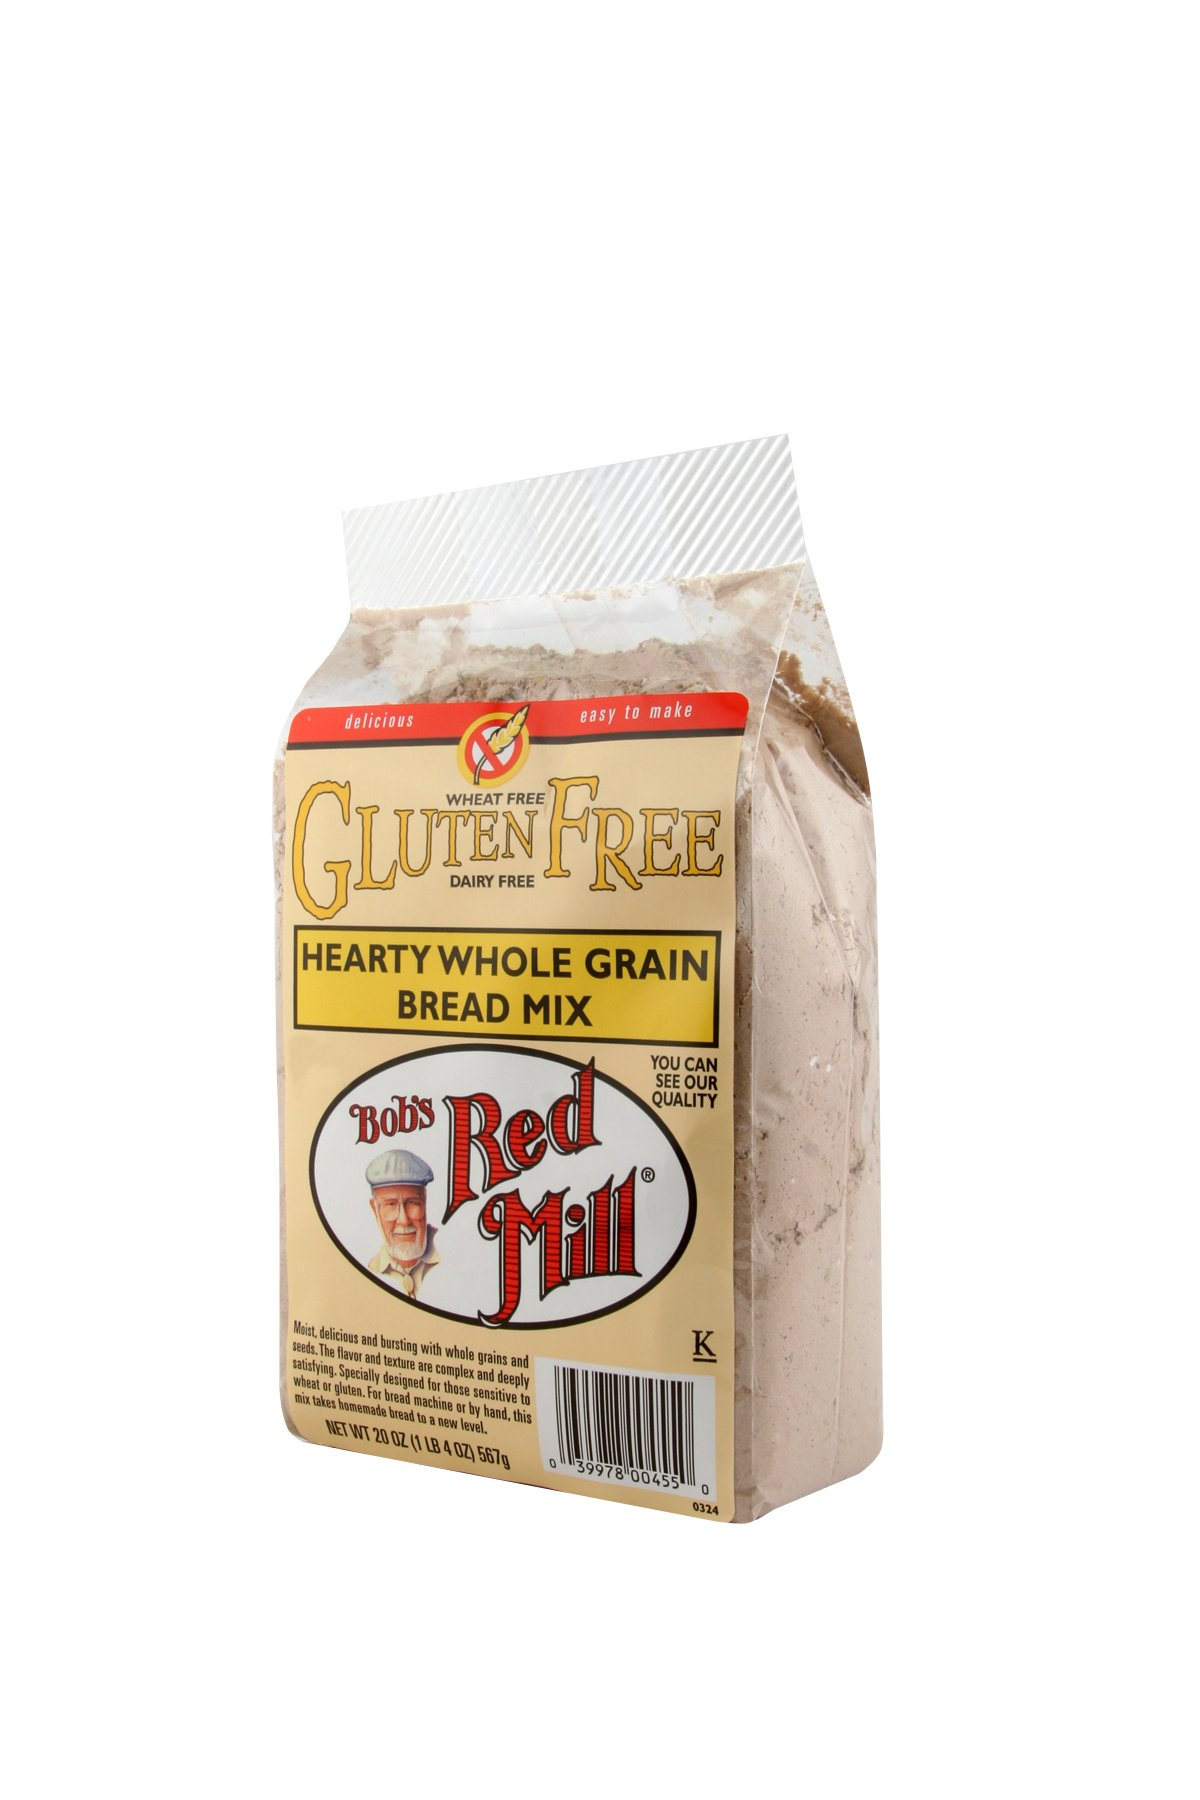 Bob's Red Mill Gluten Free Hearty Whole Grain Bread Mix, 20-ounce (Pack of 4) by Bob's Red Mill (Image #5)